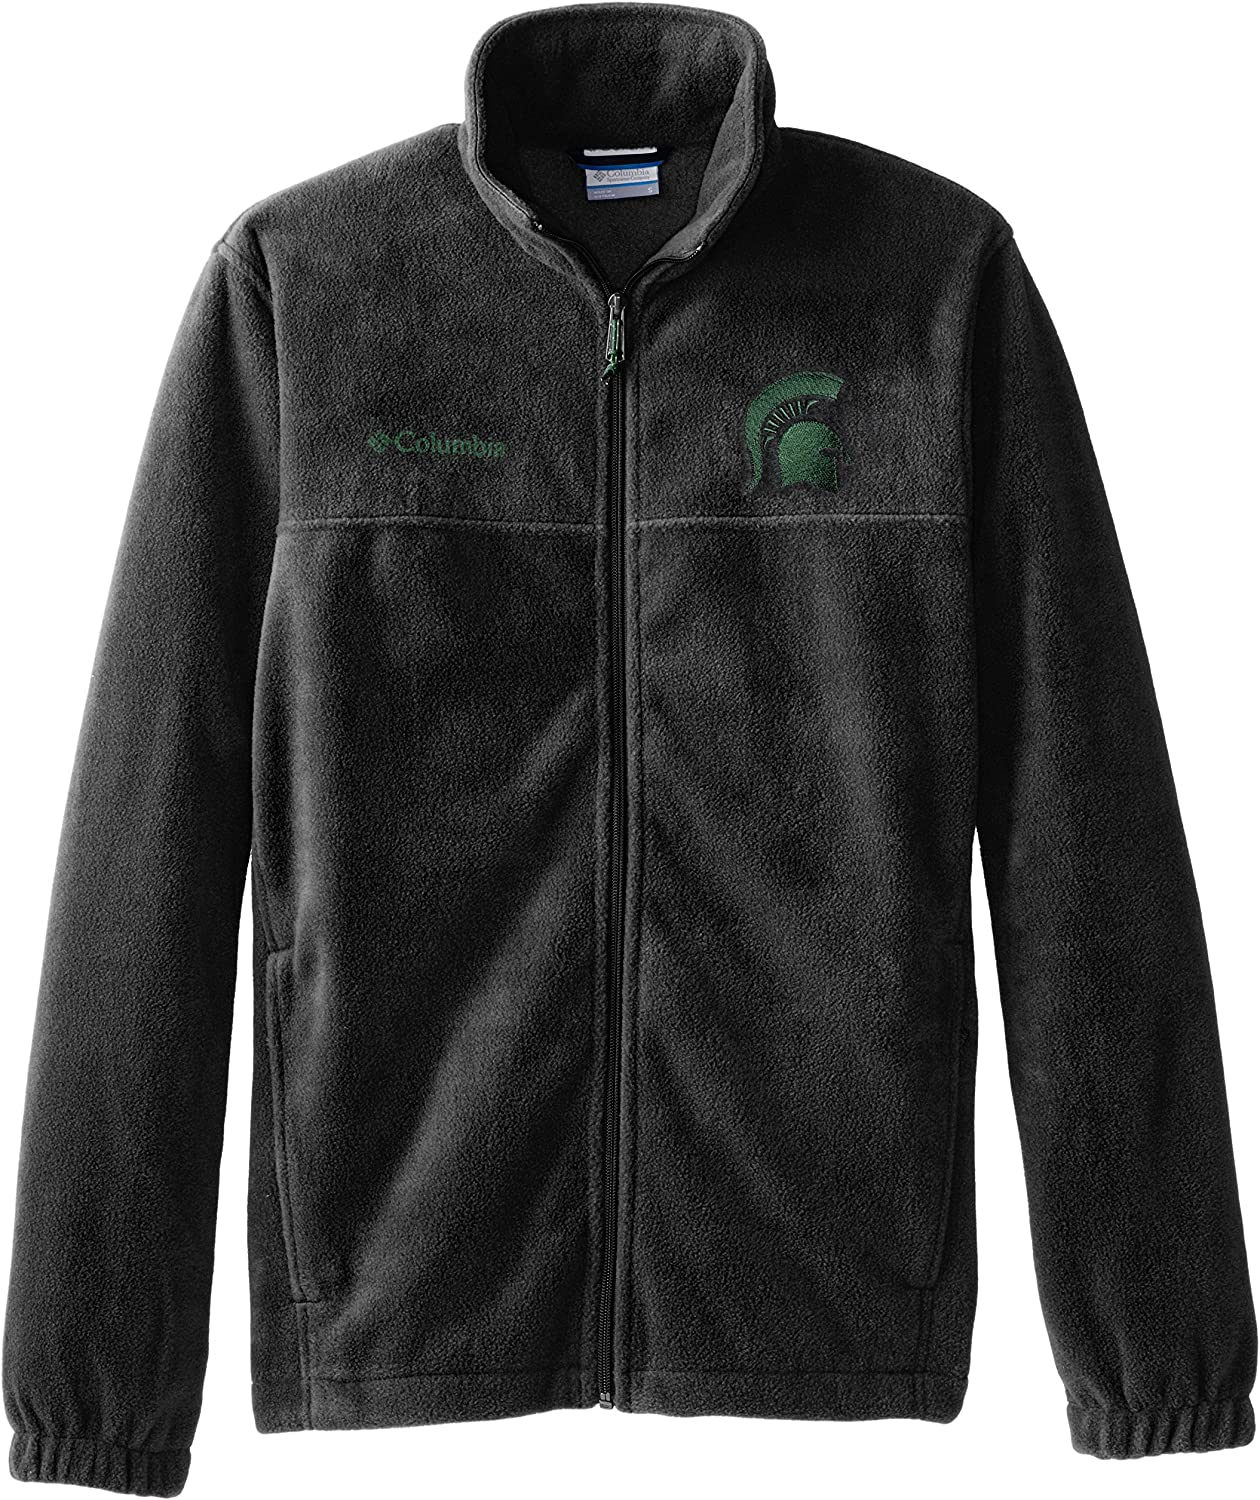 Michigan State Spartans 2 in 1 Vest /& Soft Shell Jacket Green NCAA Mens L